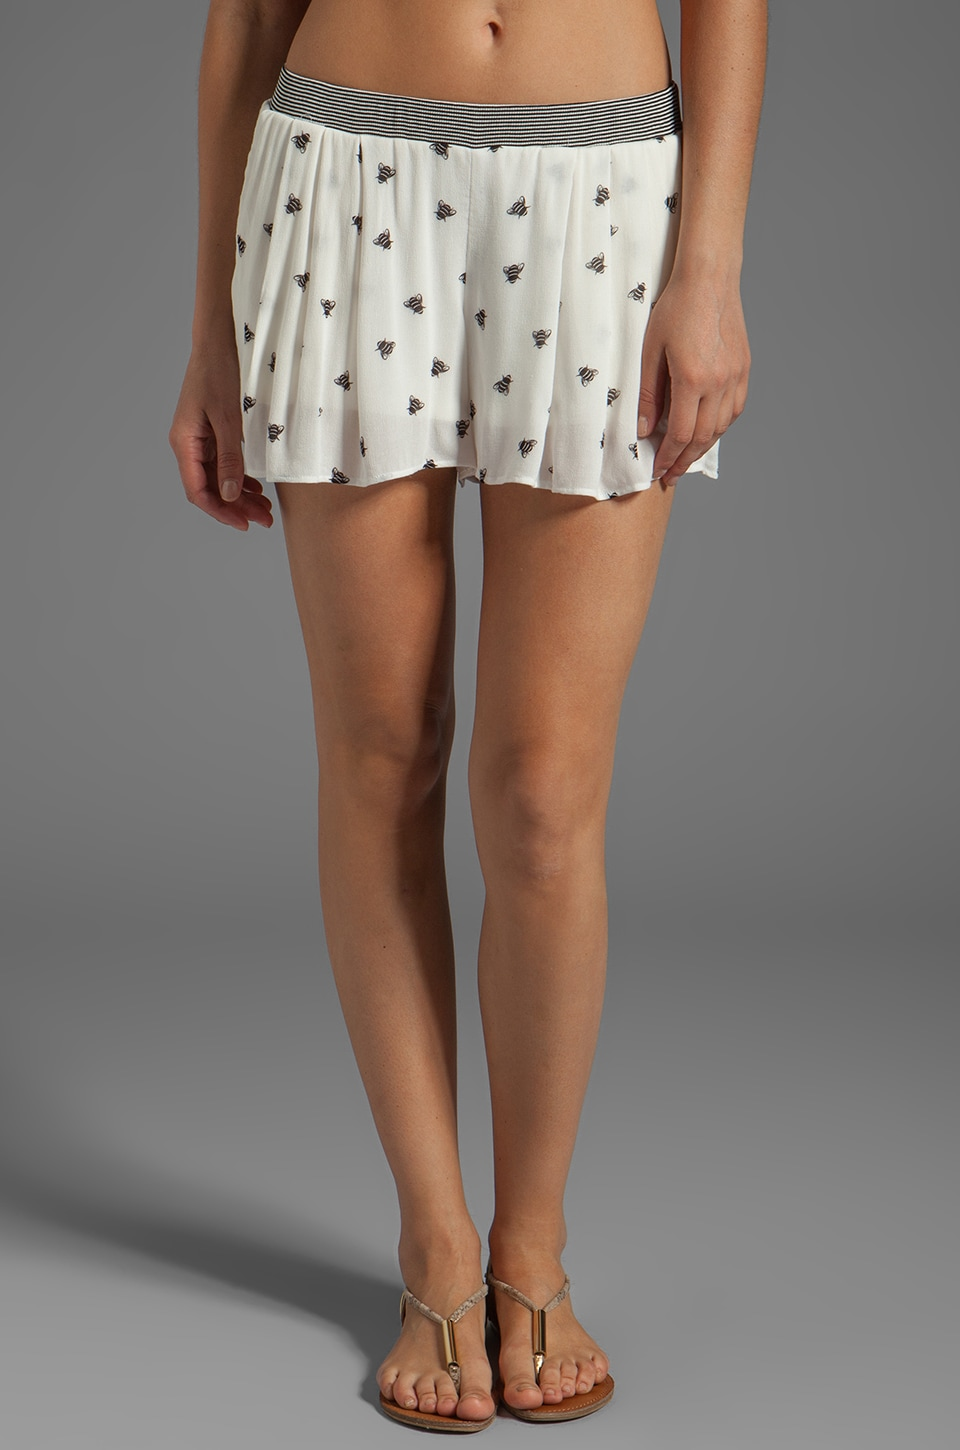 Ella Moss Honey Bee Shorts in Linen